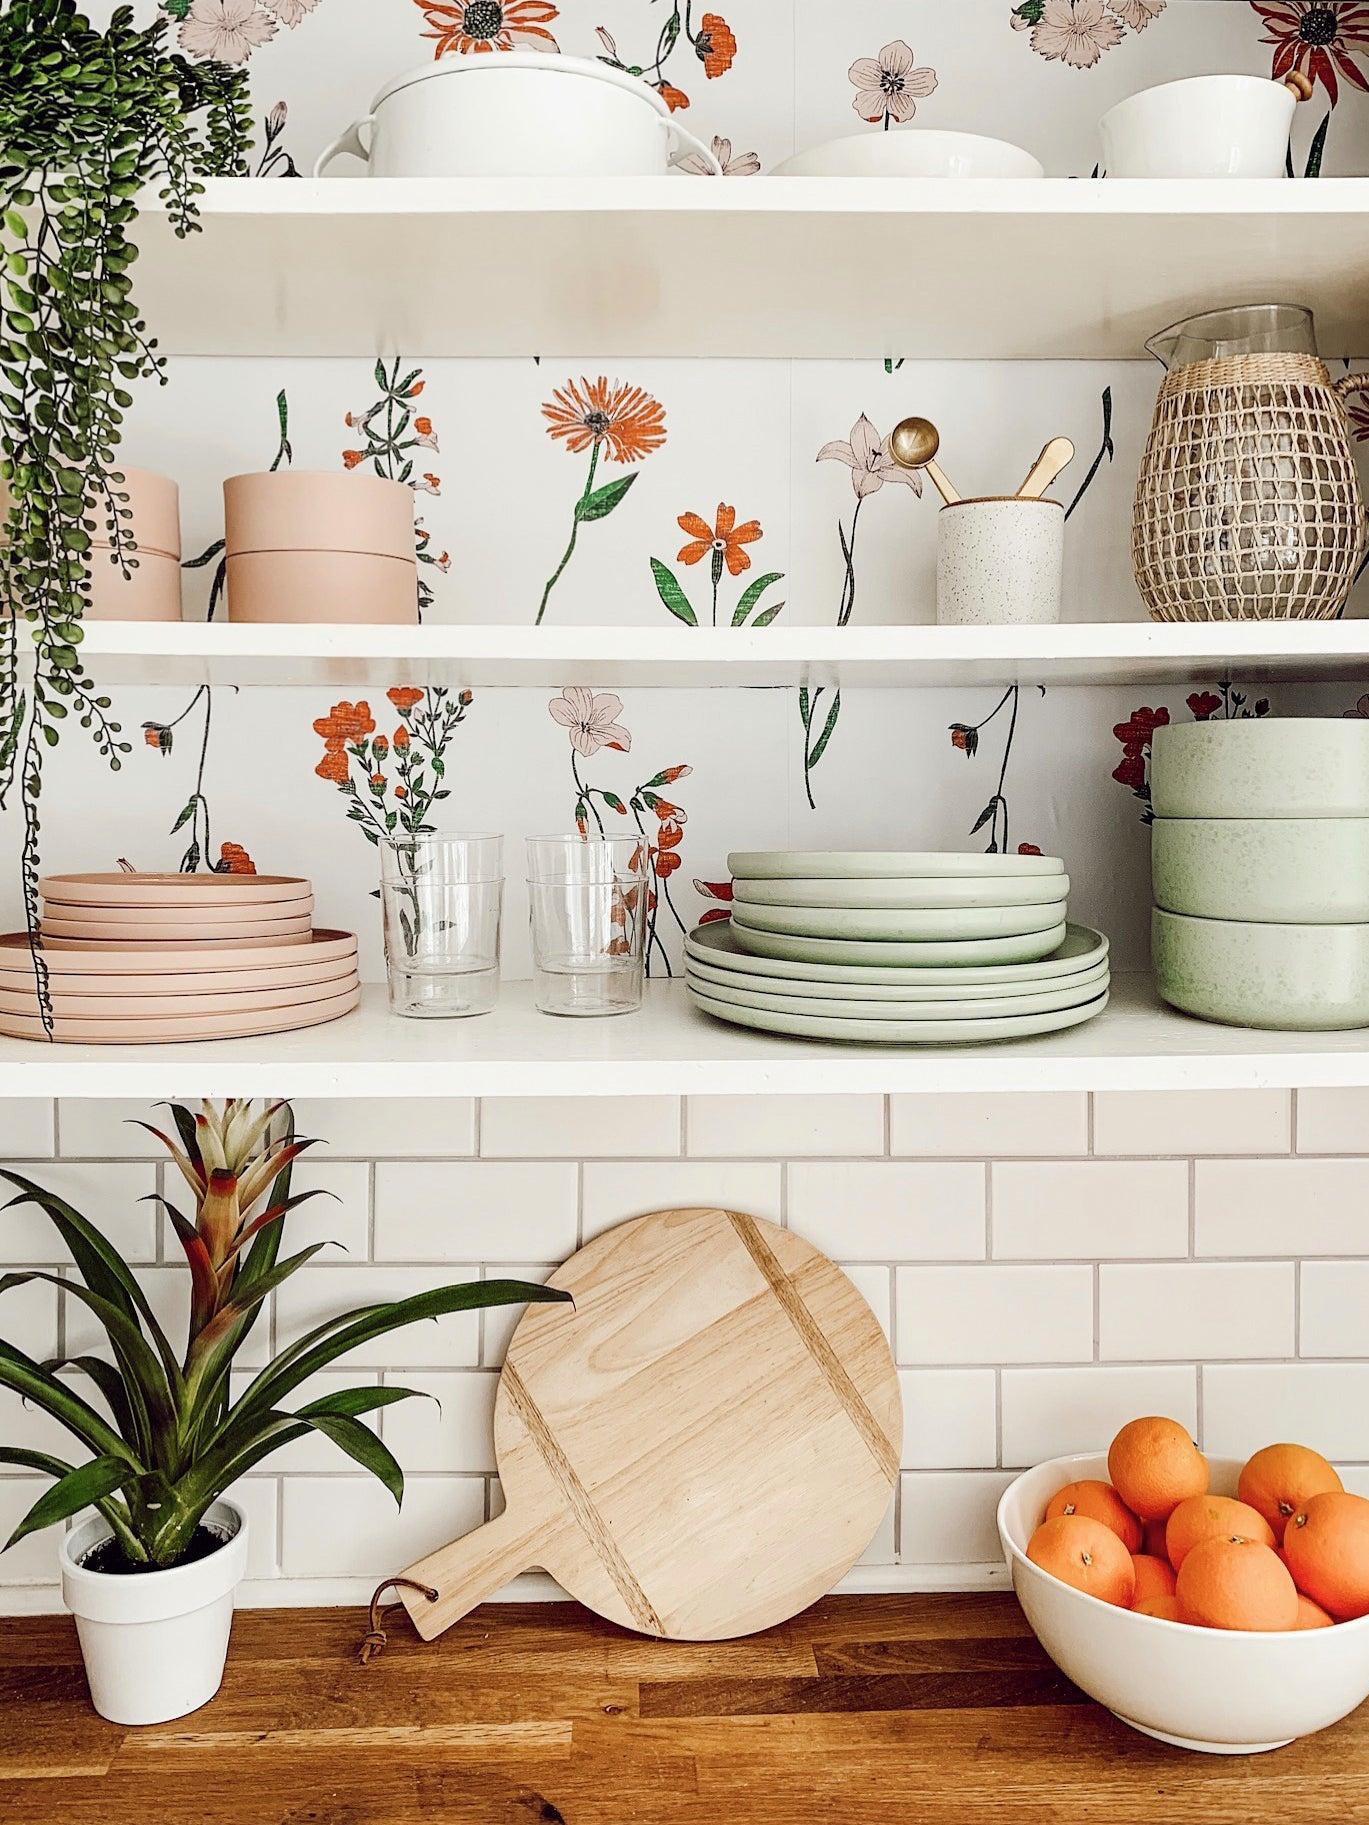 7 Kitchen Wallpaper Ideas to Instantly Spice Up That Subway Tile